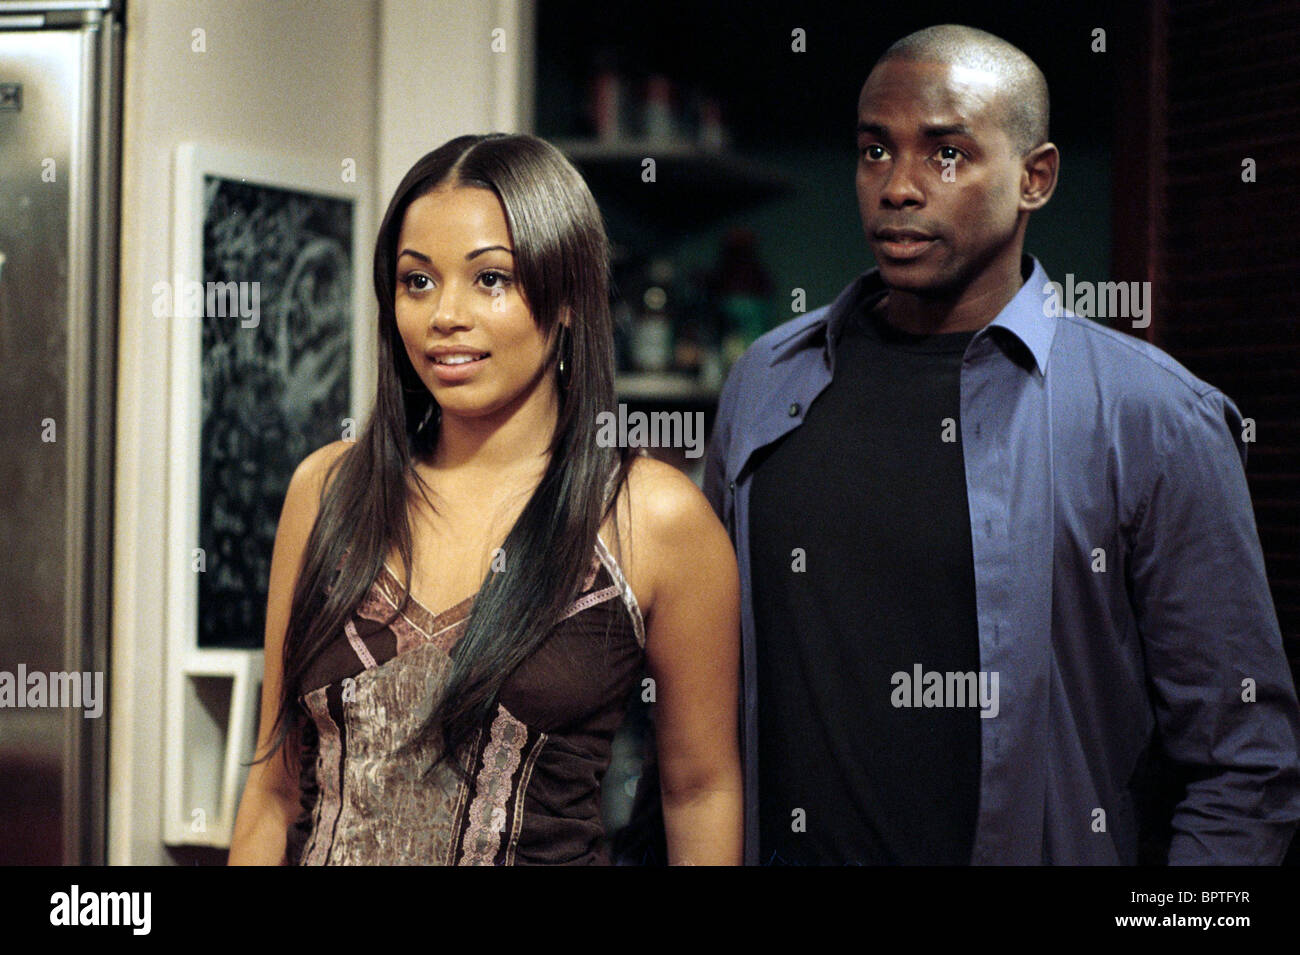 This Christmas Lauren London.Lauren London Keith Robinson This Christmas 2007 Stock